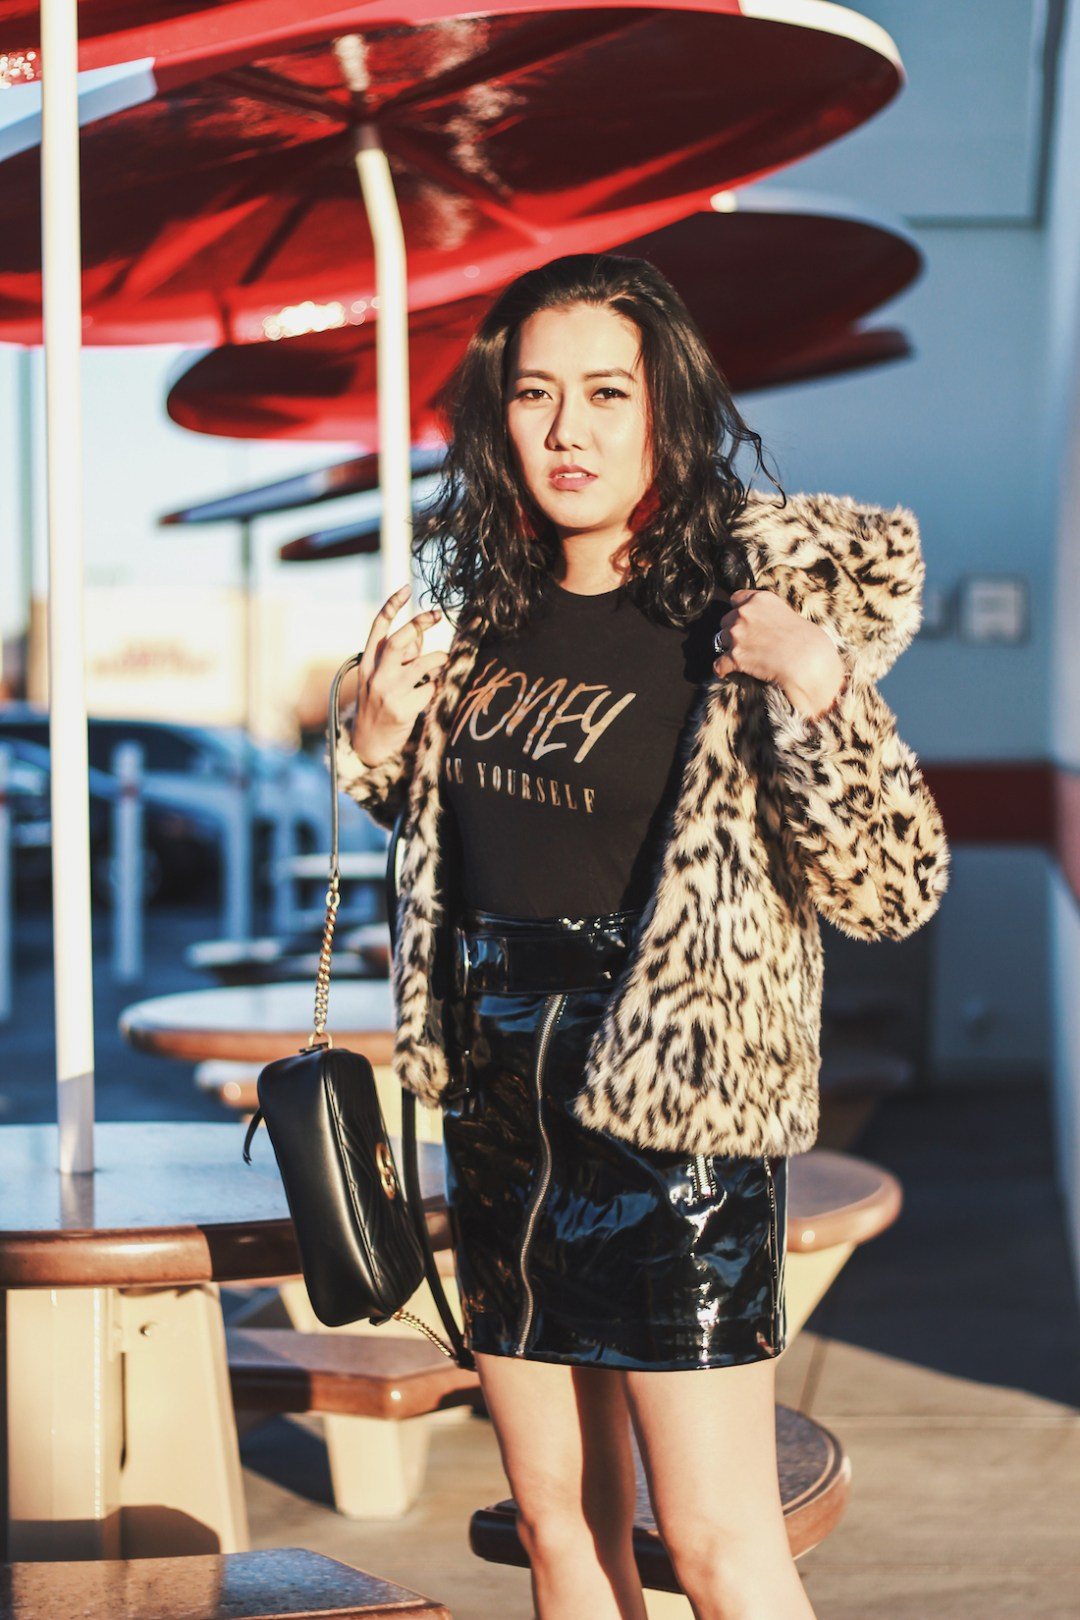 HM-Leopard-Print-Jacket-Patent-Skirt-Winter-Outfit-Honey-Be-Yourself-Black-and-Gold-Graphic-Tee